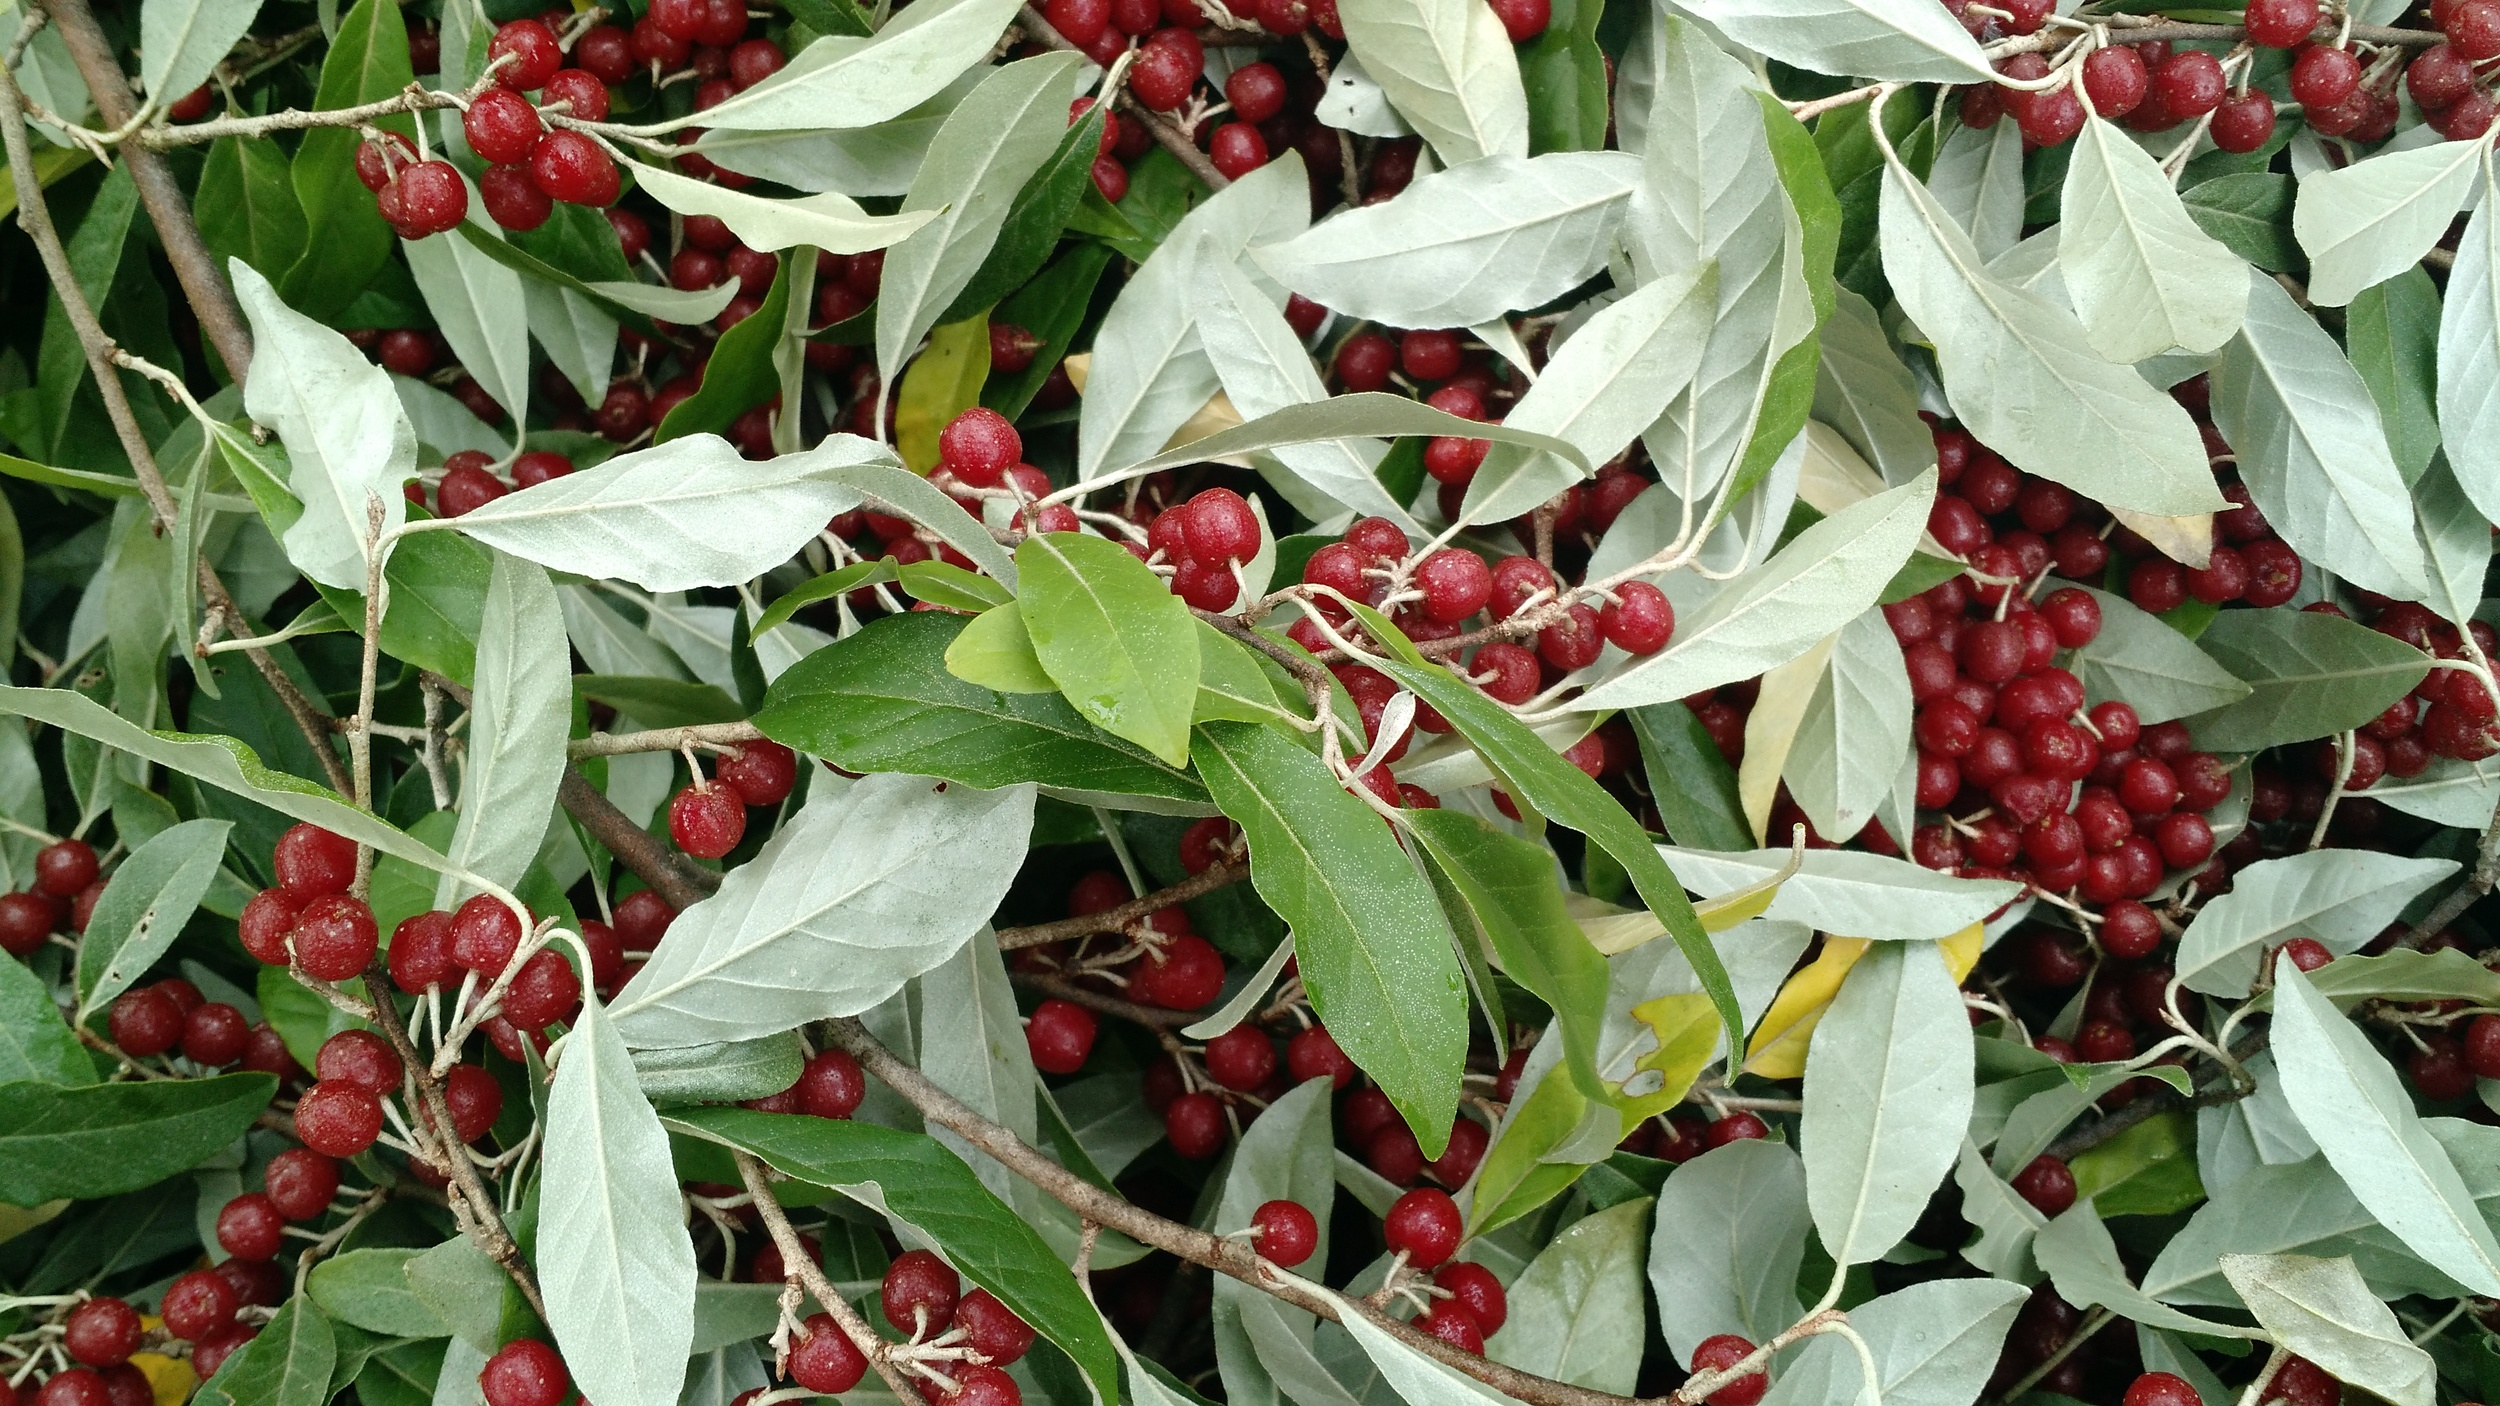 Close-up of pruned branches with berries.